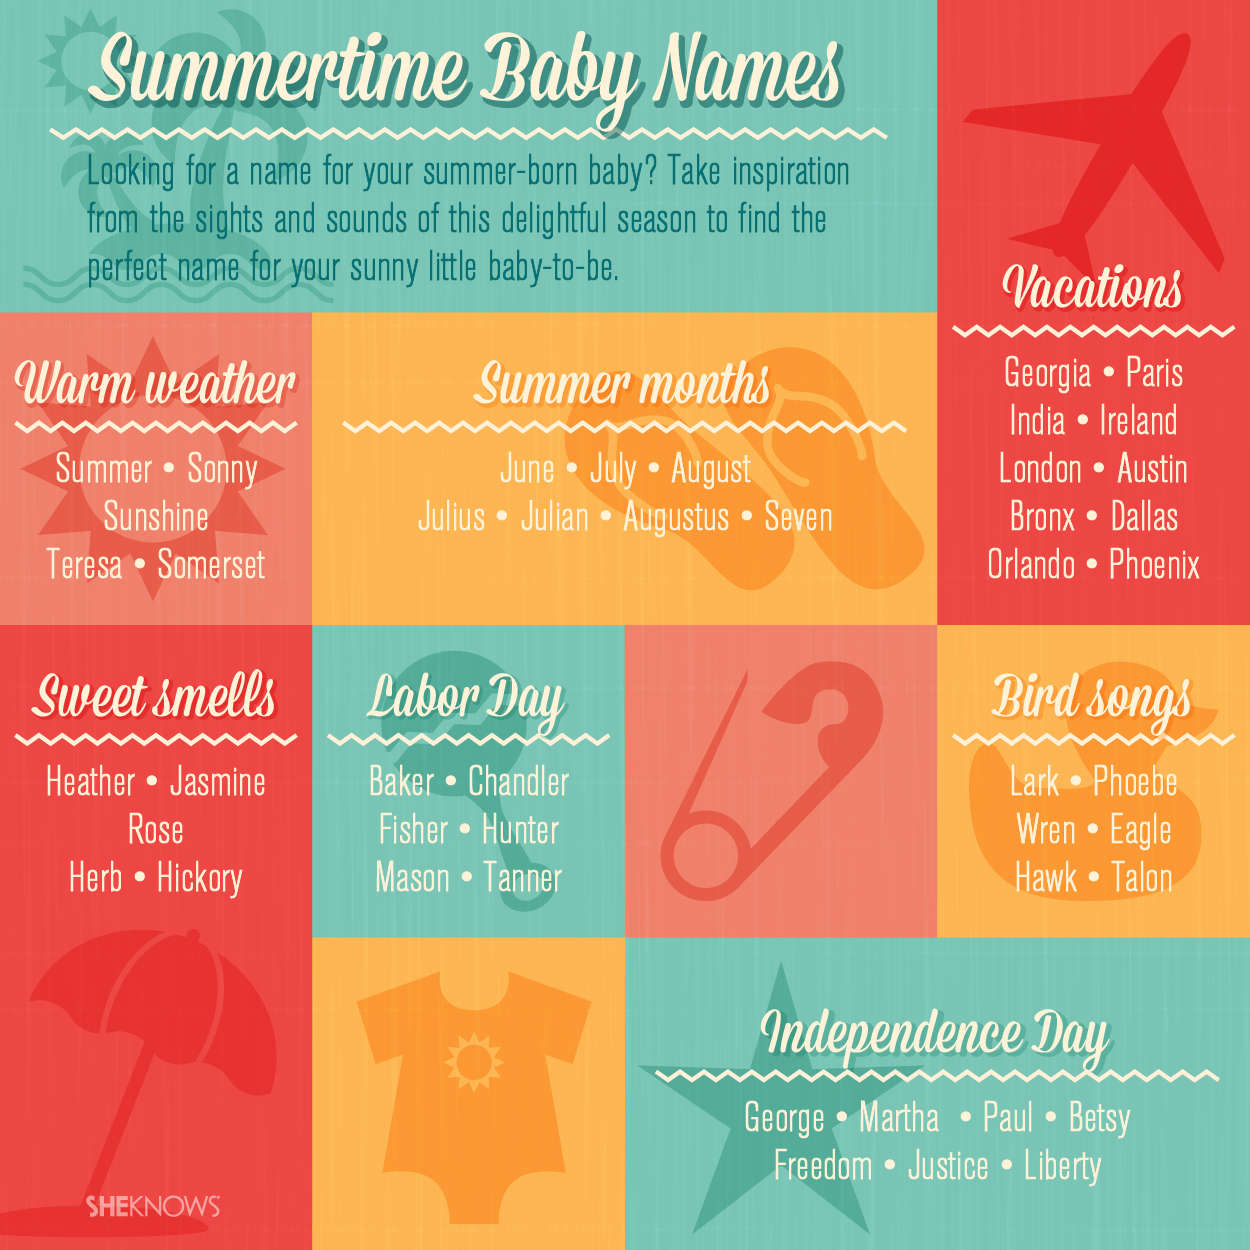 Summer time baby names | Sheknows.com